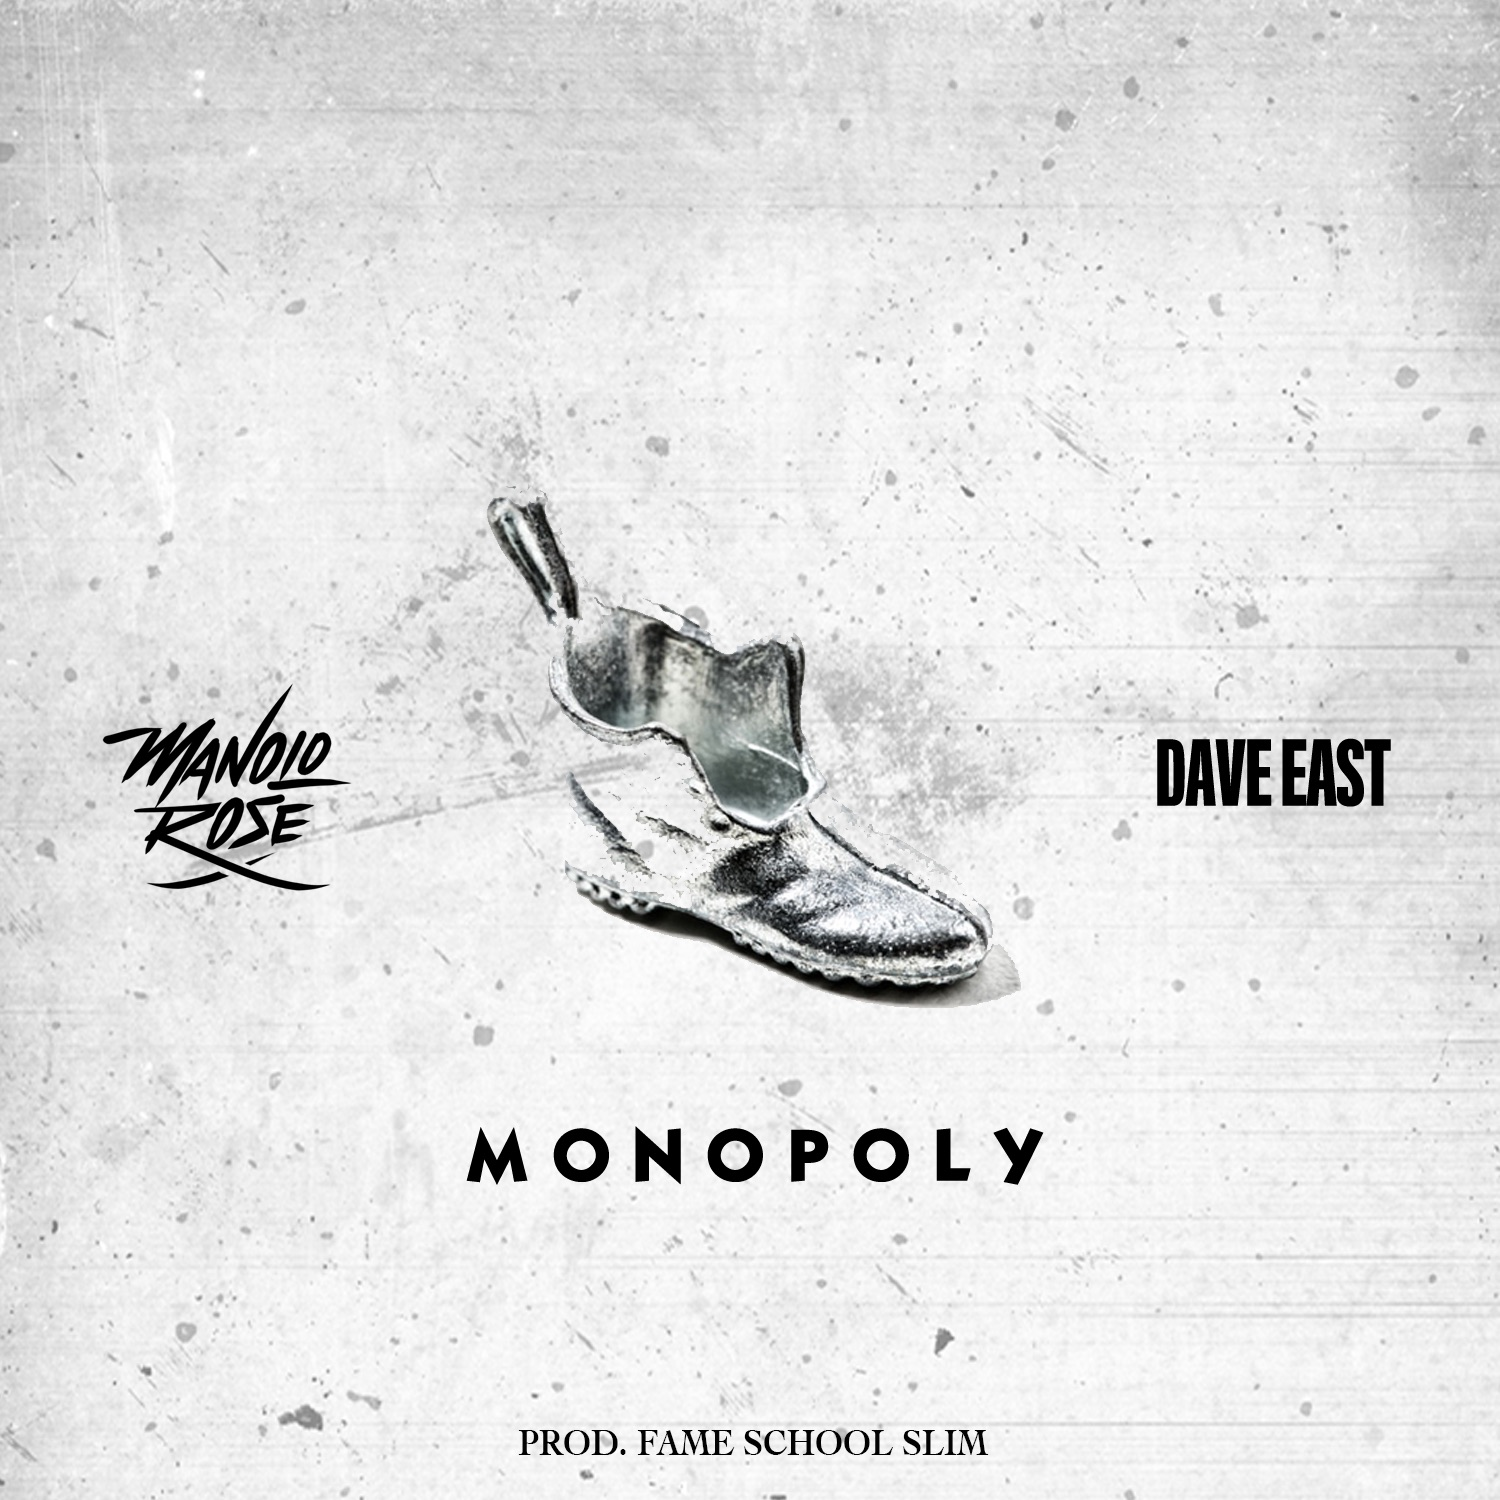 monolo-rose-monopoly-feat-dave-east